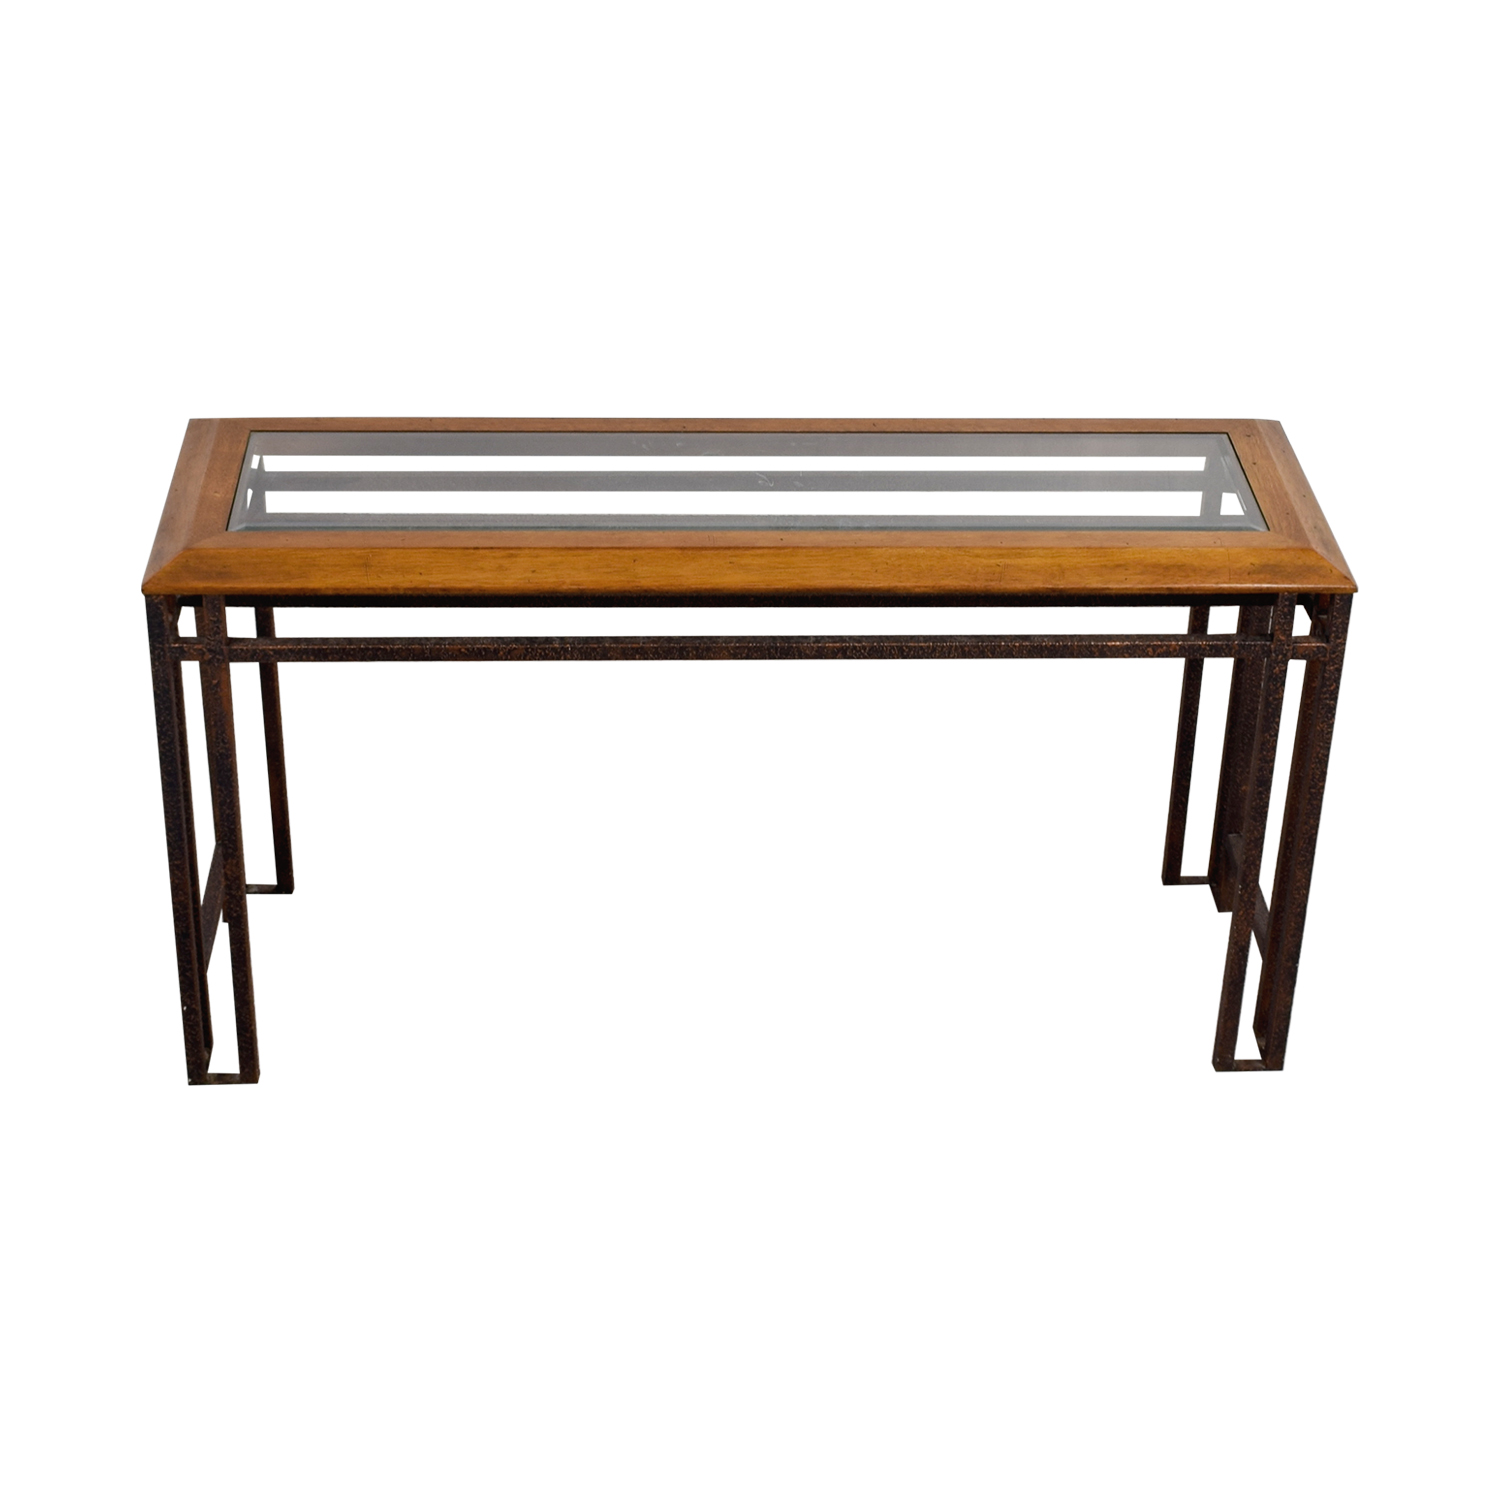 Rustic Brass Wood and Glass Console Table Accent Tables